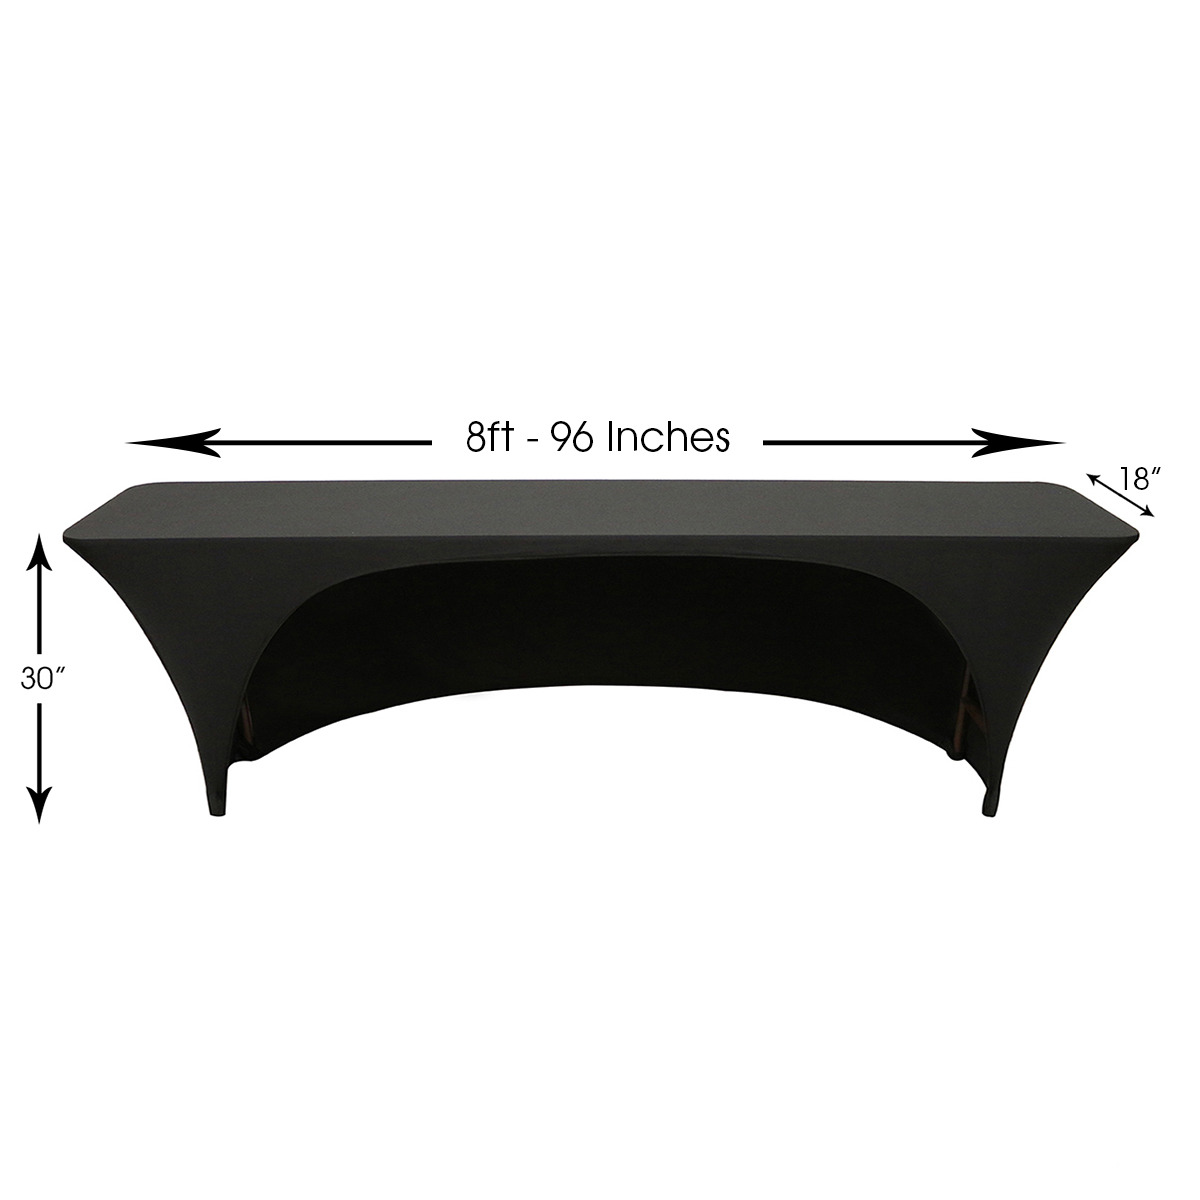 8 ft x 18 inches open back classroom rectangular spandex table covers. Black Bedroom Furniture Sets. Home Design Ideas